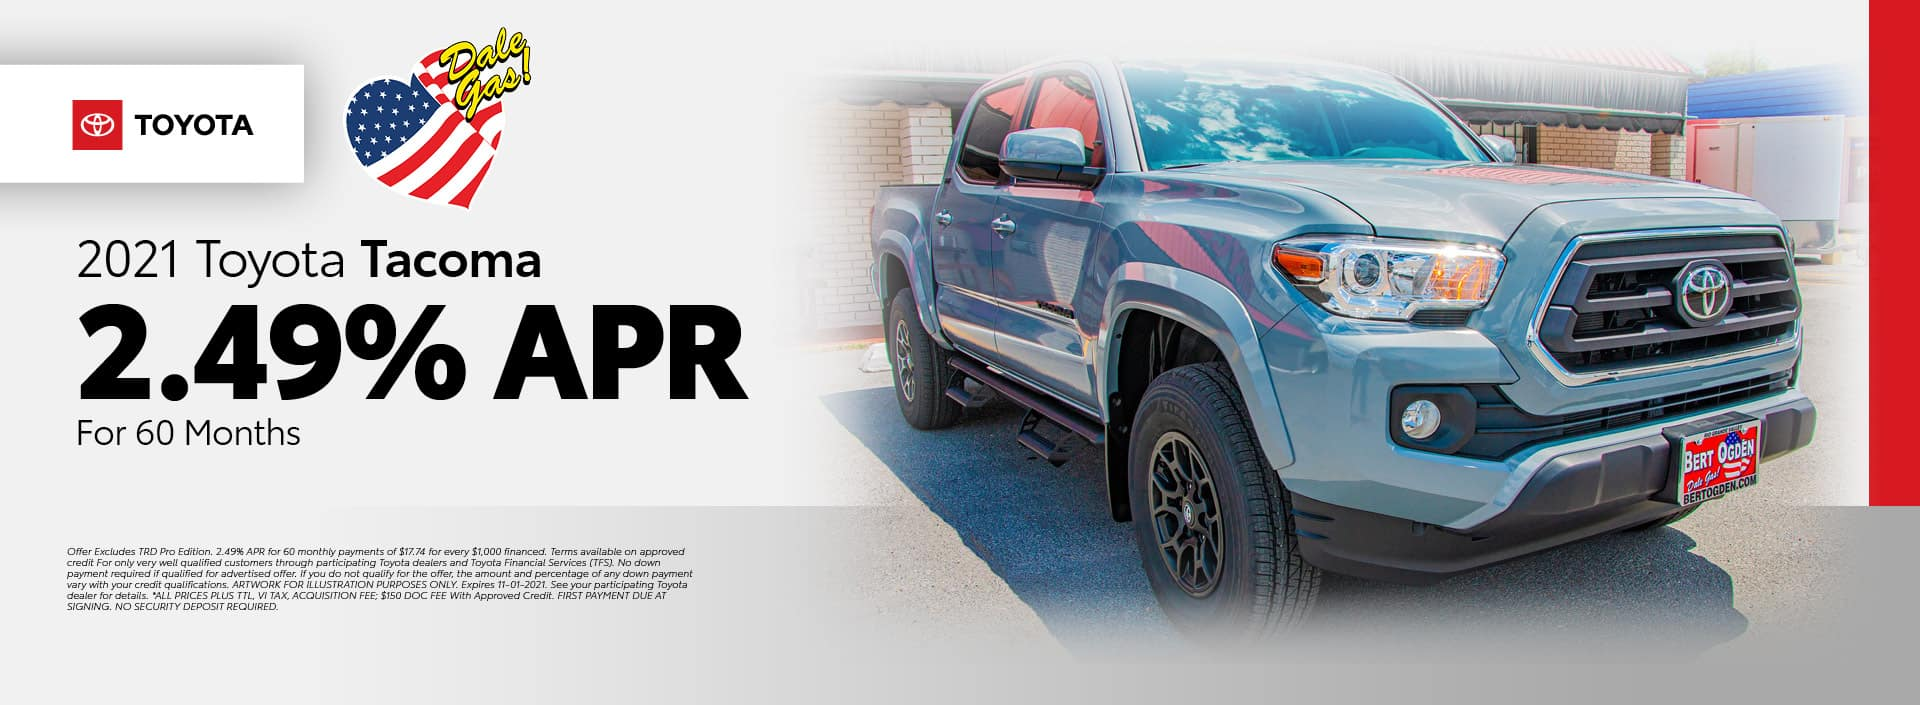 2021 Toyota Tacoma Offer - October 2021